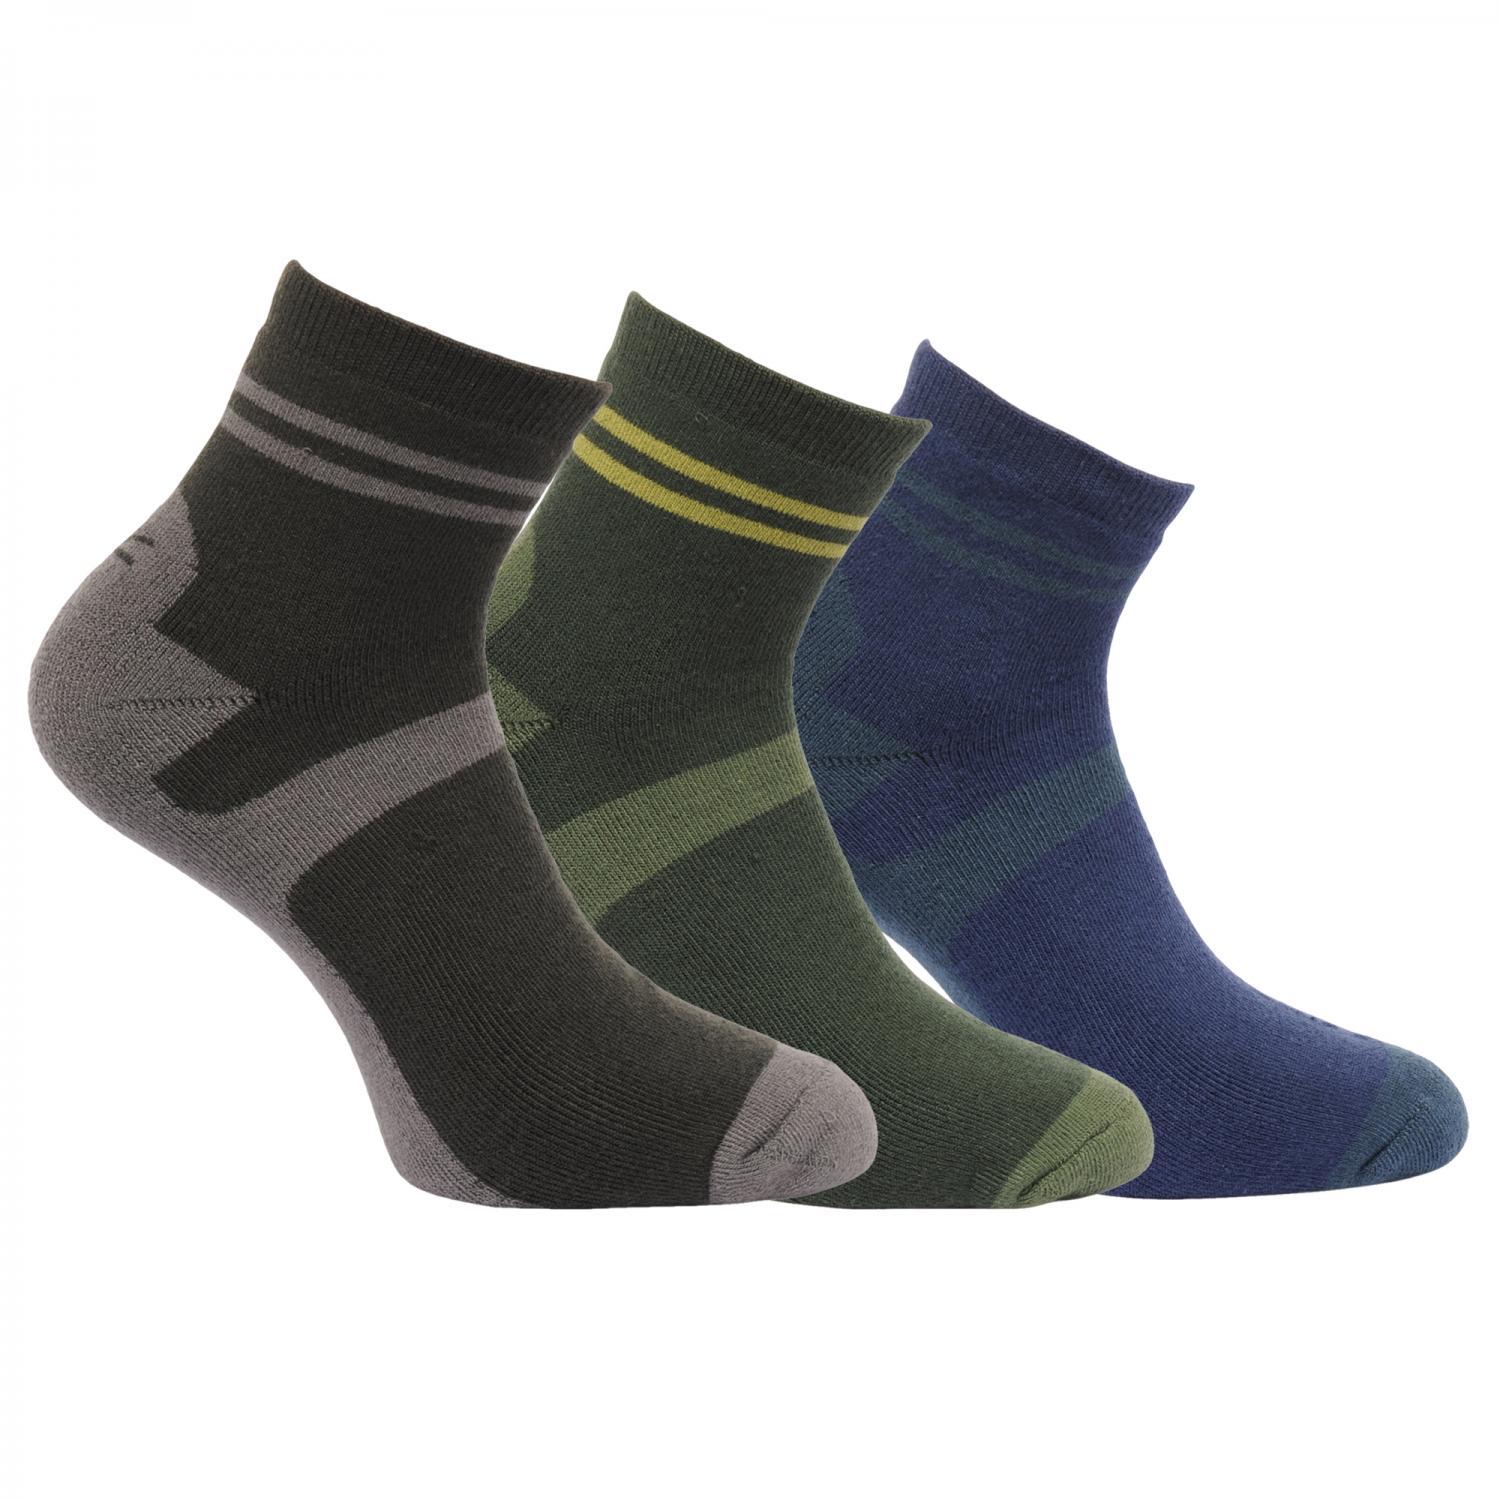 Mens 3 Pack Active Lifestyle Socks Ravn Bayleaf Navy